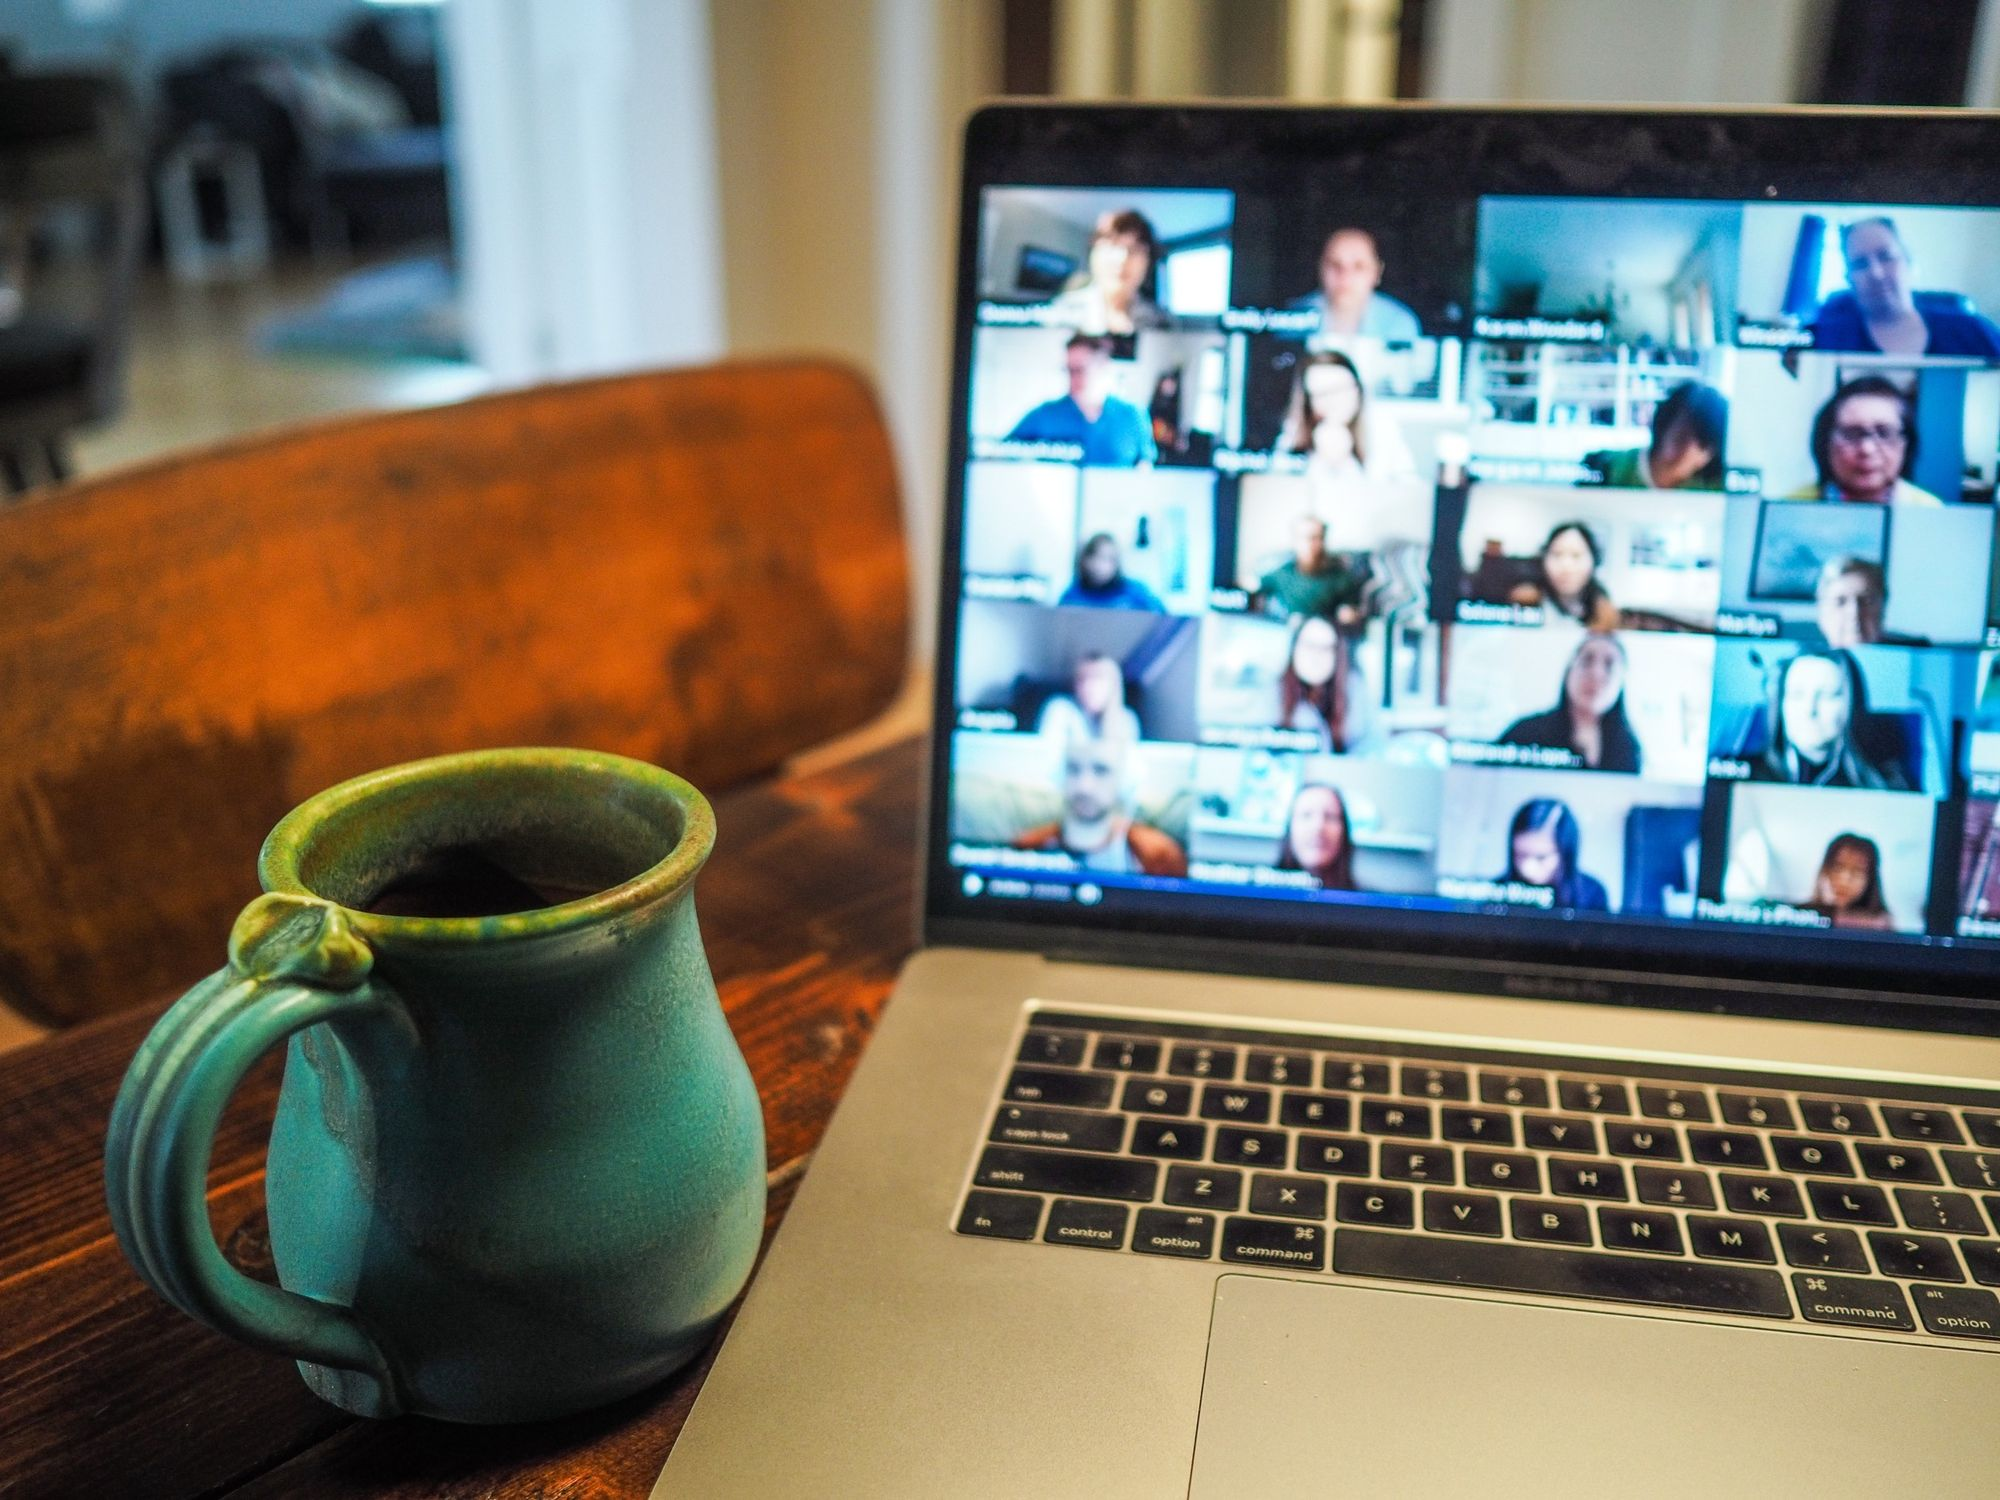 laptop with Zoom screen next to mug_team building activities for work_flok